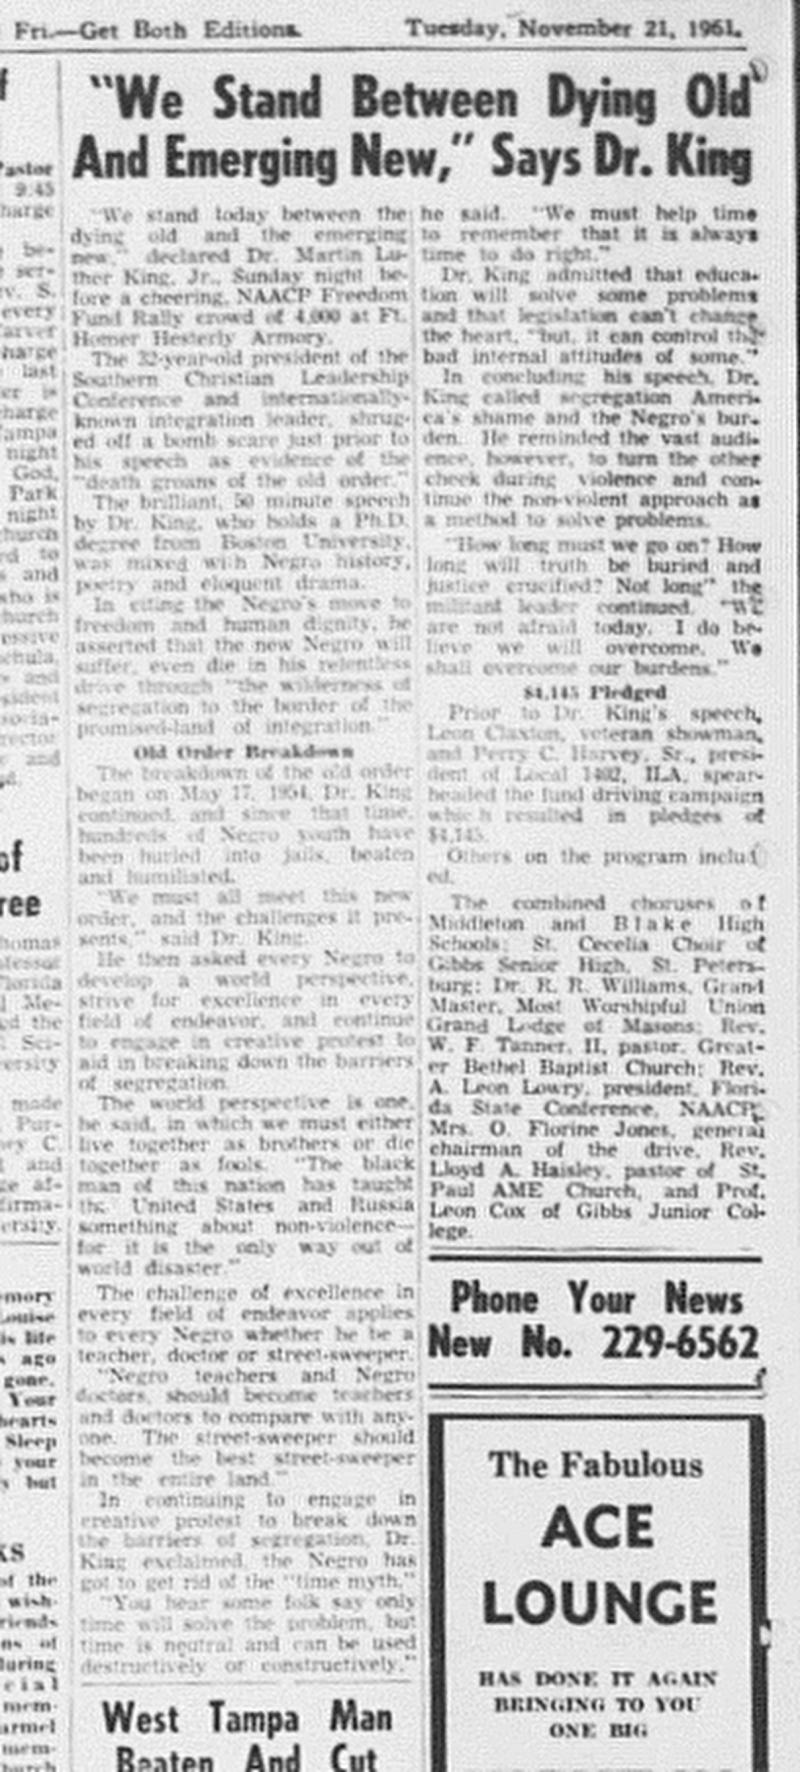 An article from the Florida Sentinel Bulletin dated Nov. 21, 1961.